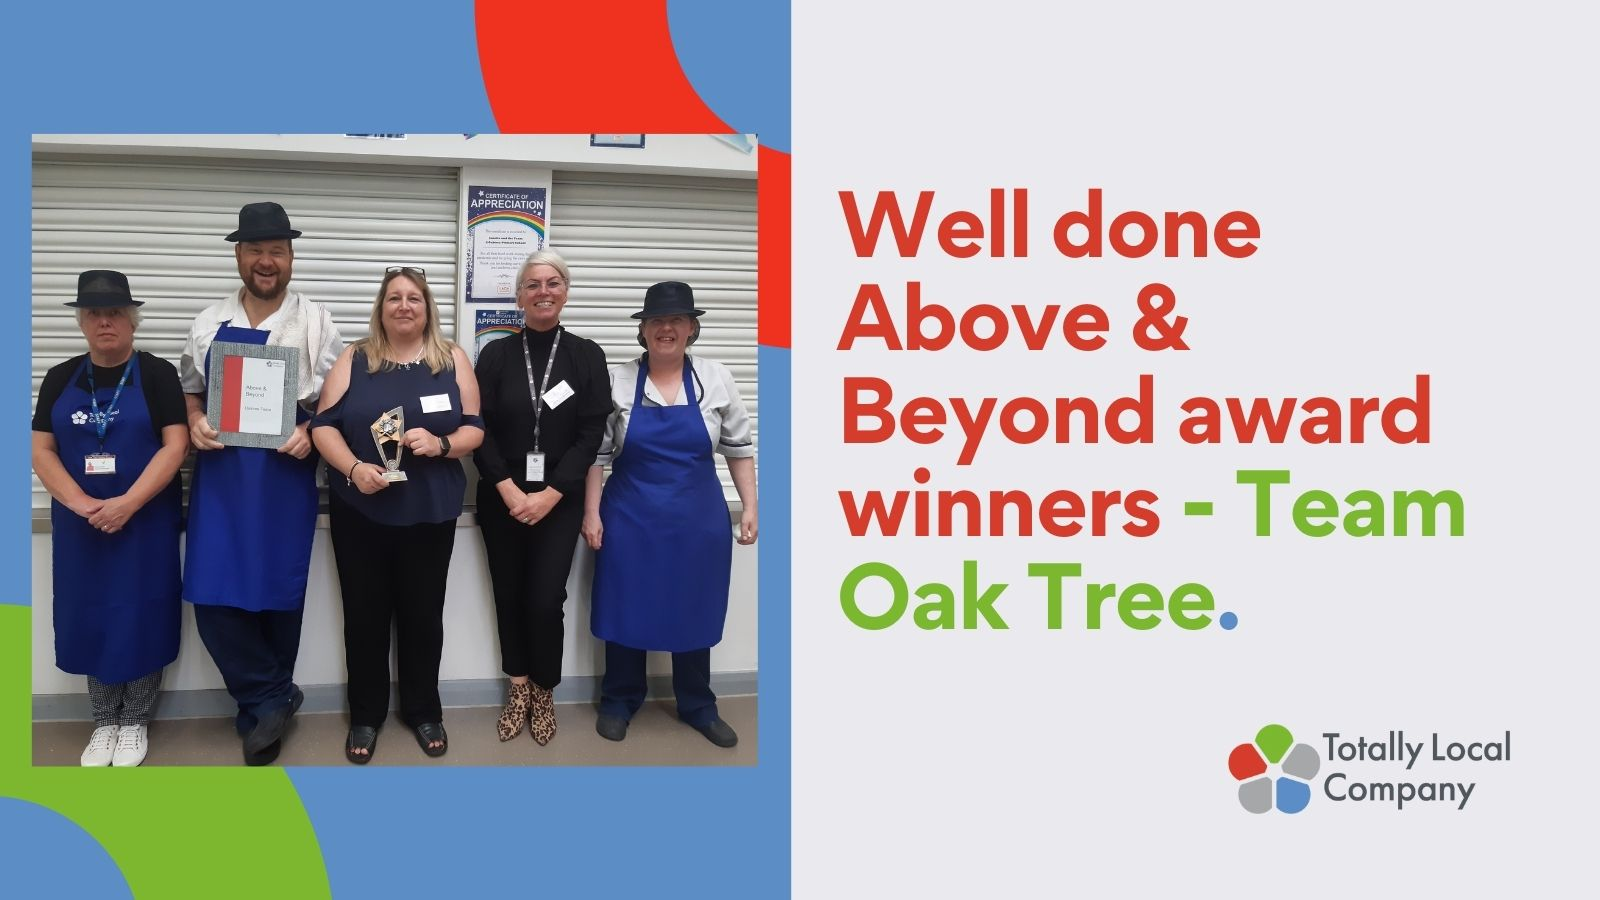 wording - well done above & beyond award winners - Oak Tree, picture of 4 teams members standing with their senior manager